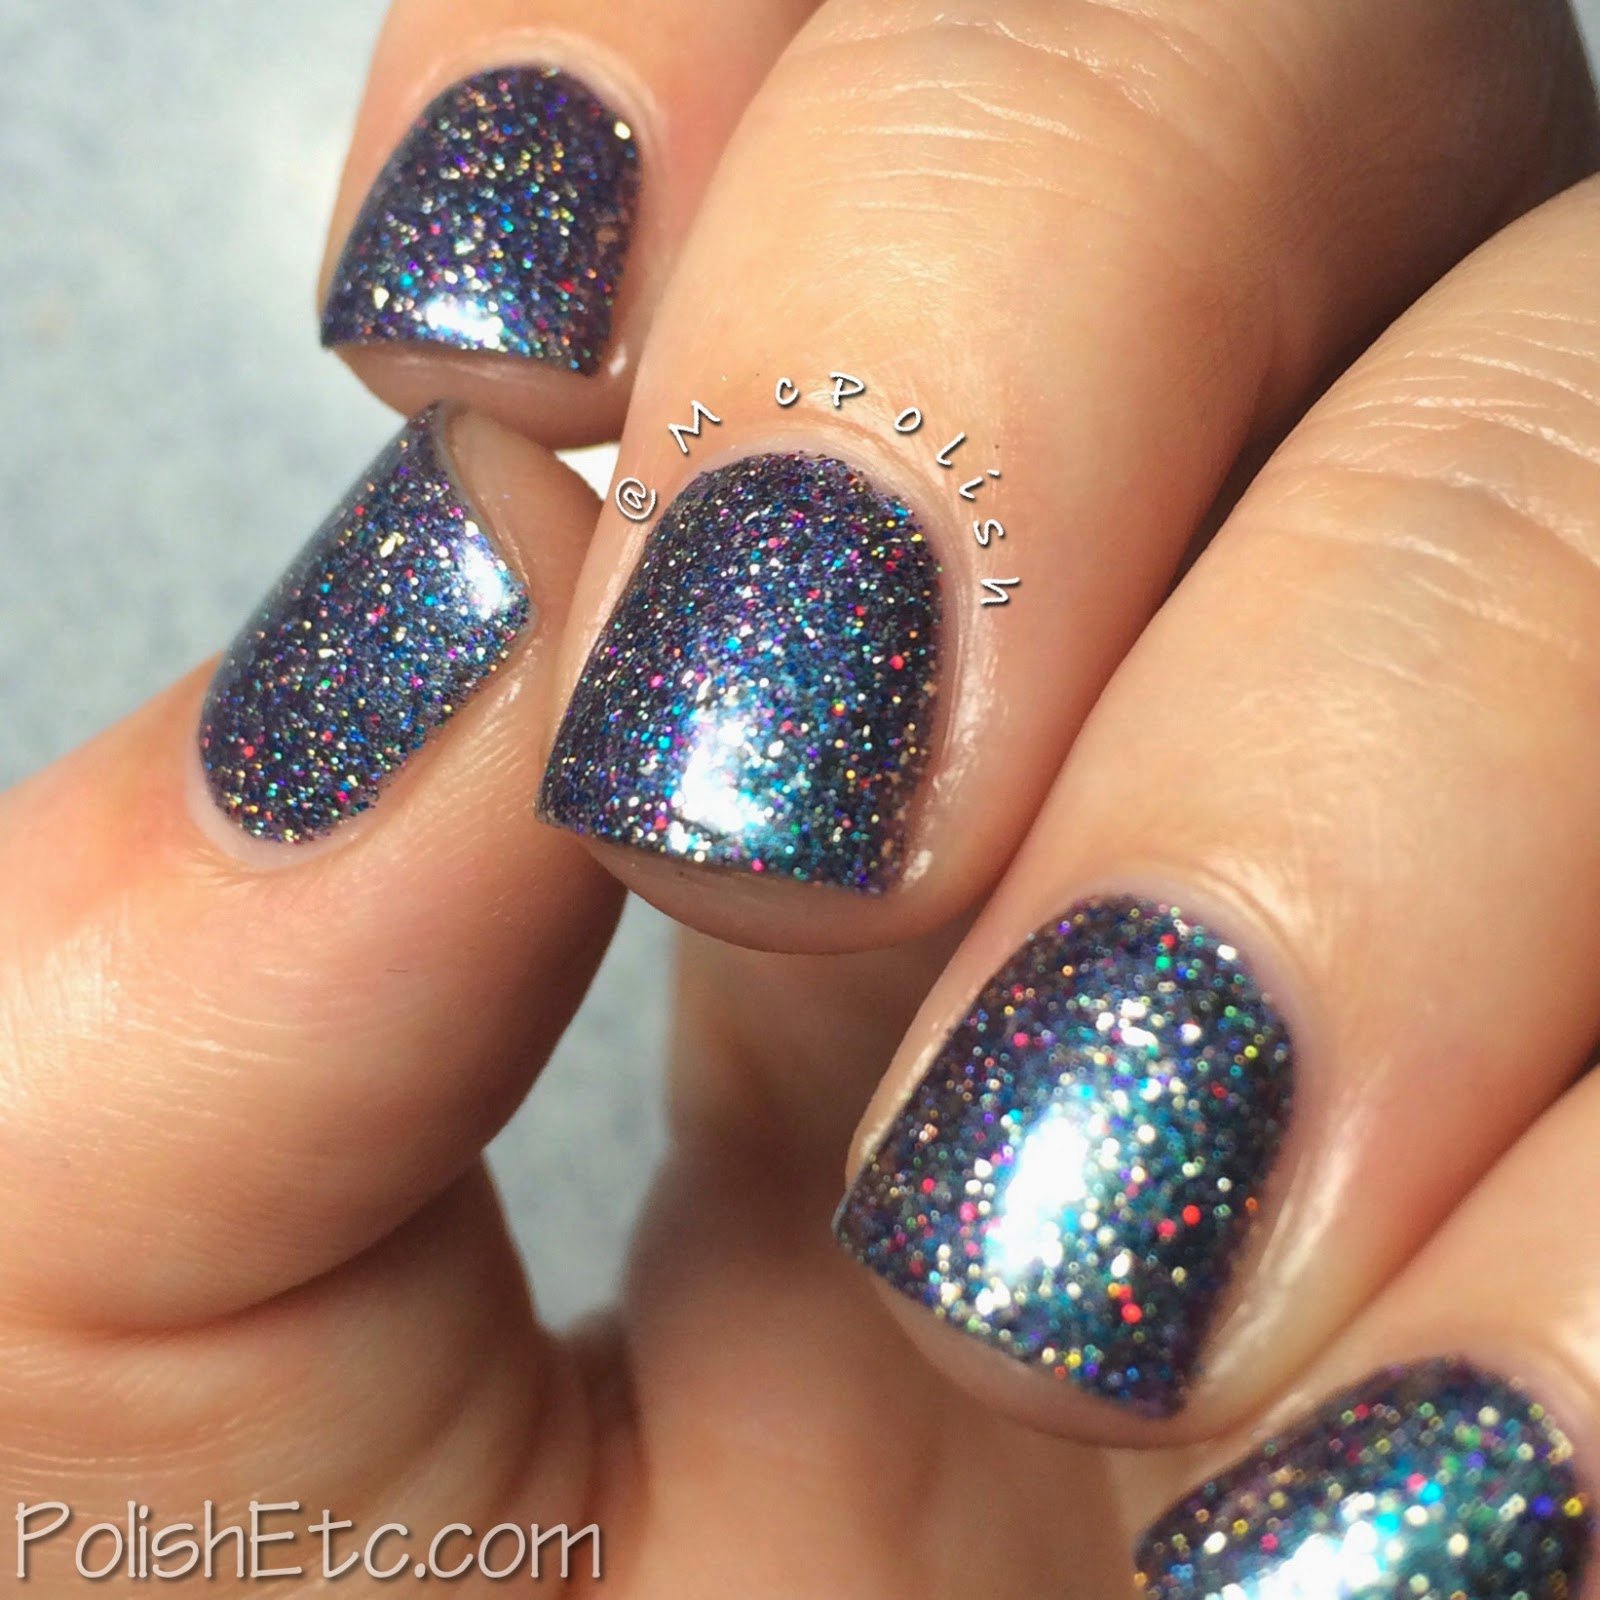 Digital Nails - So Sparkle (swatched by McPolish)